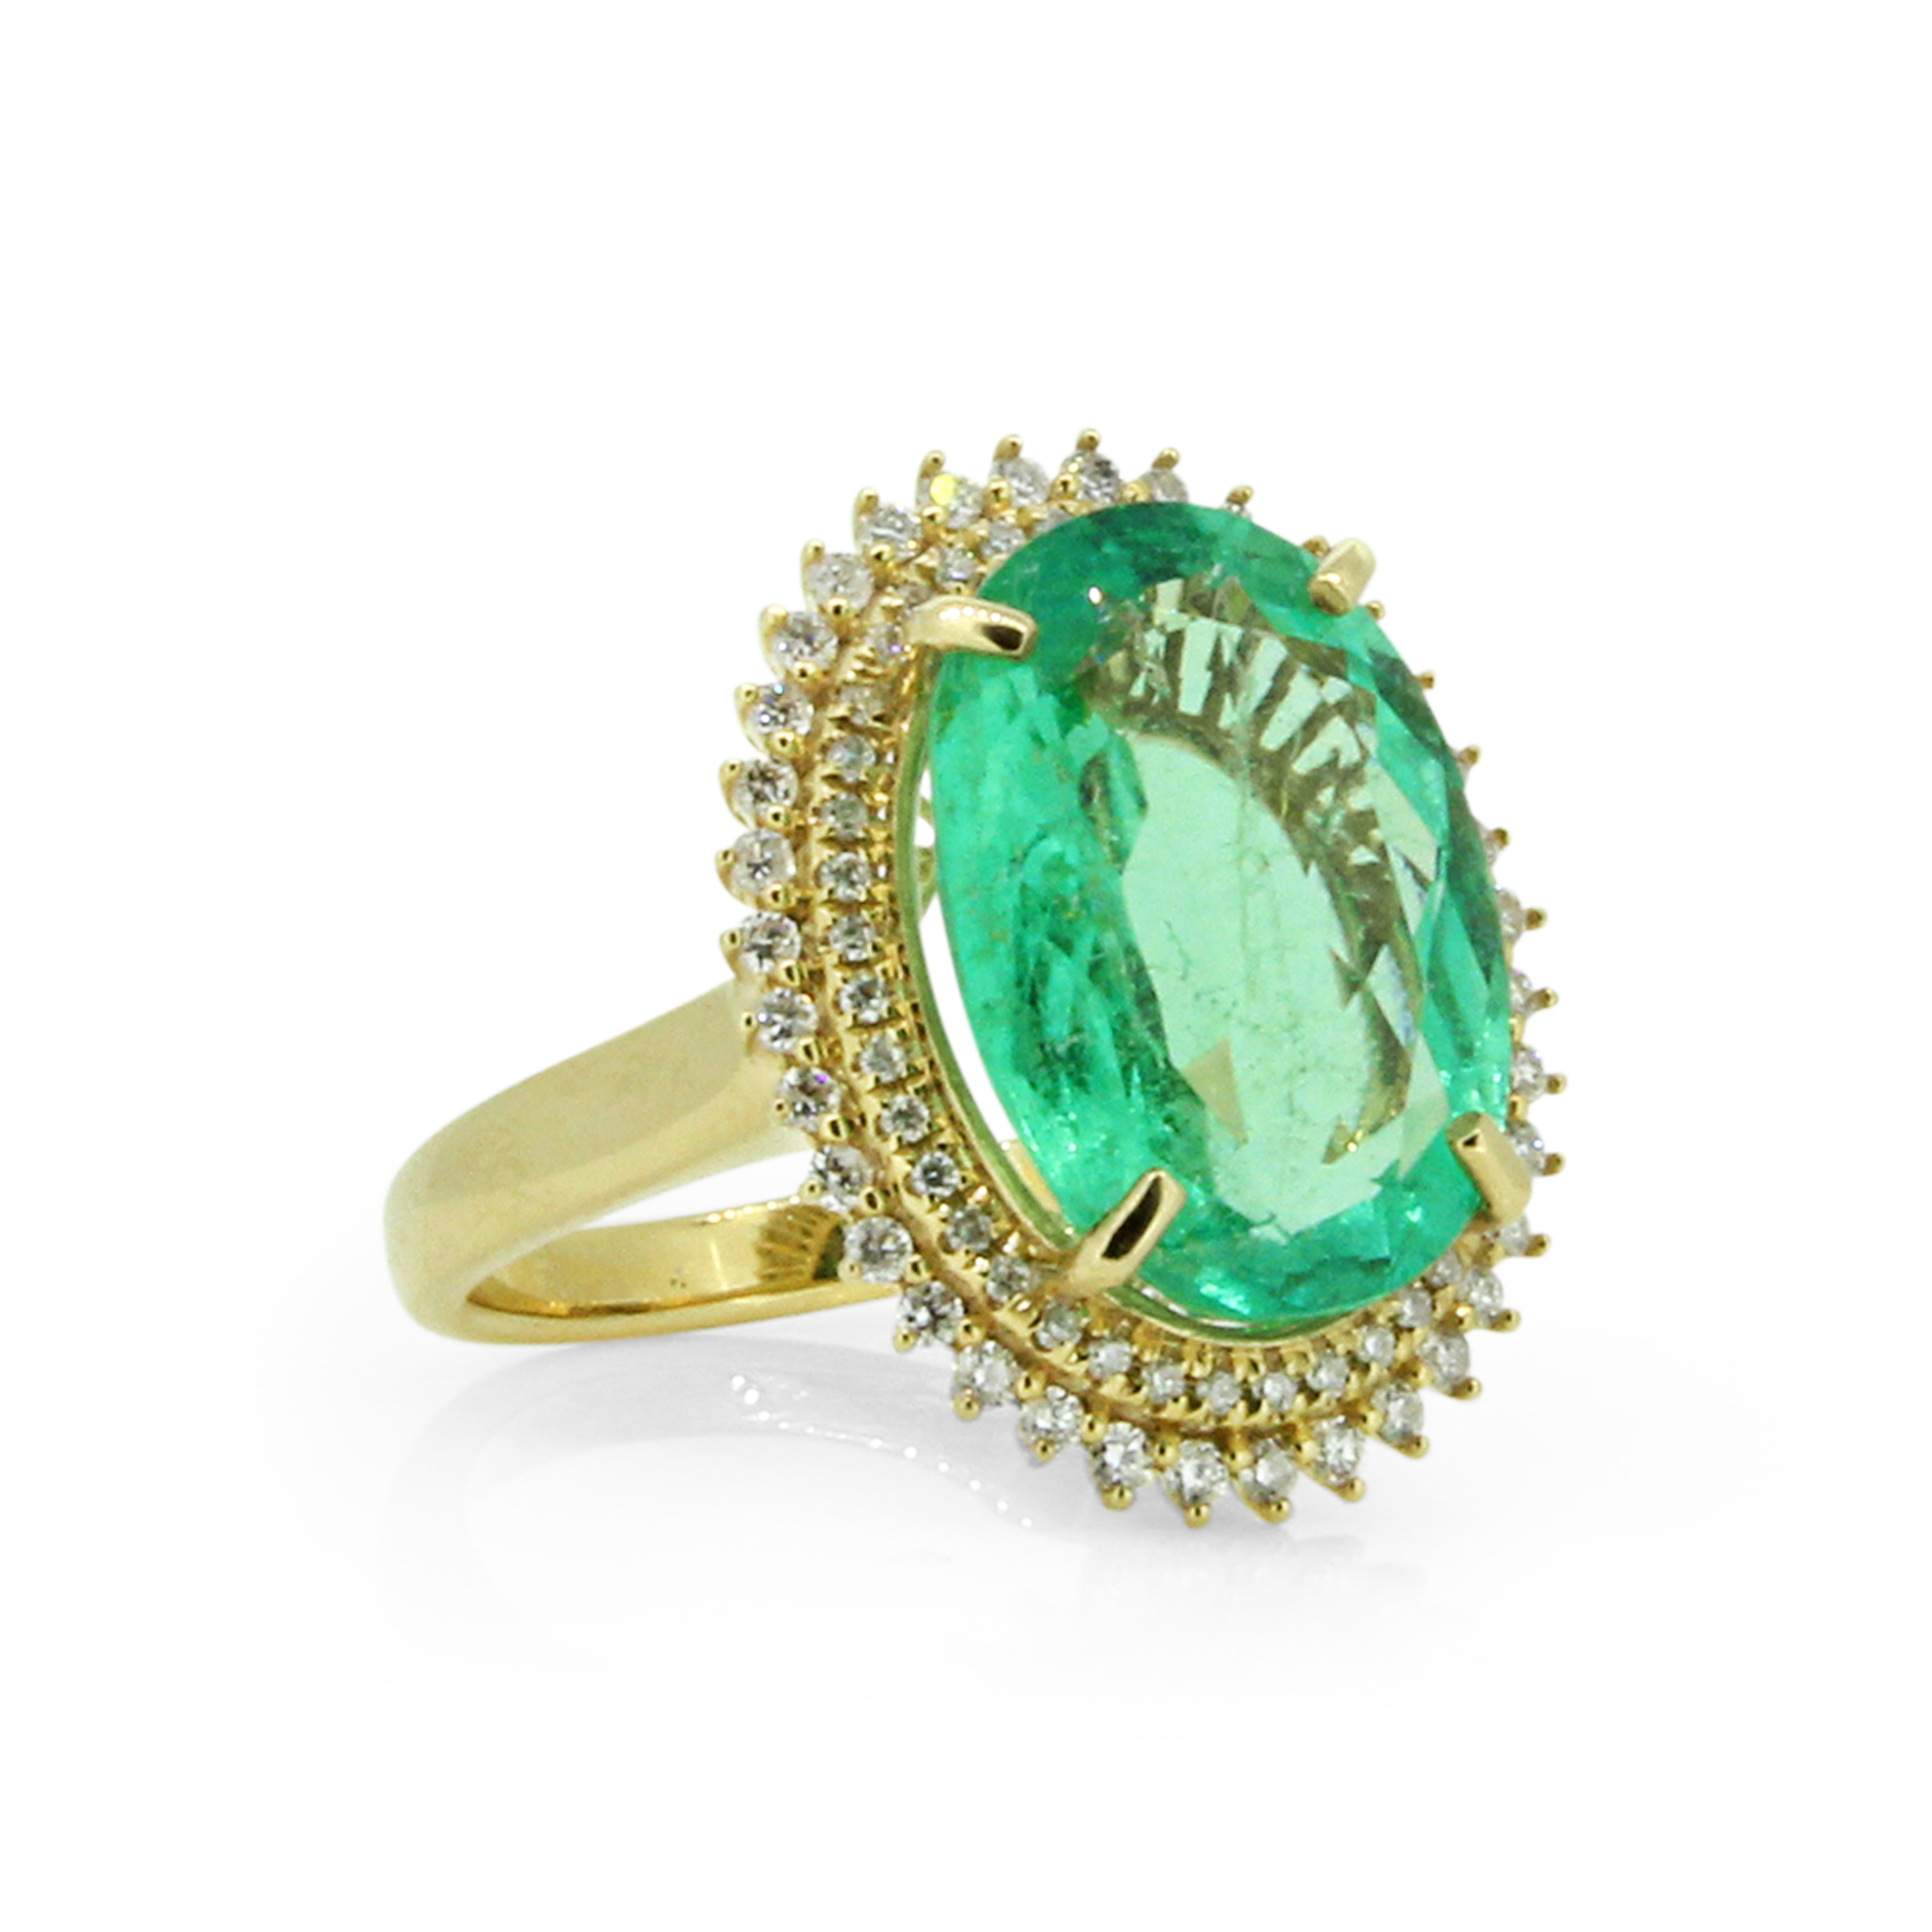 sale mond diamond ring edwardian emeral emerald id mindi at master j jewelry rings for band